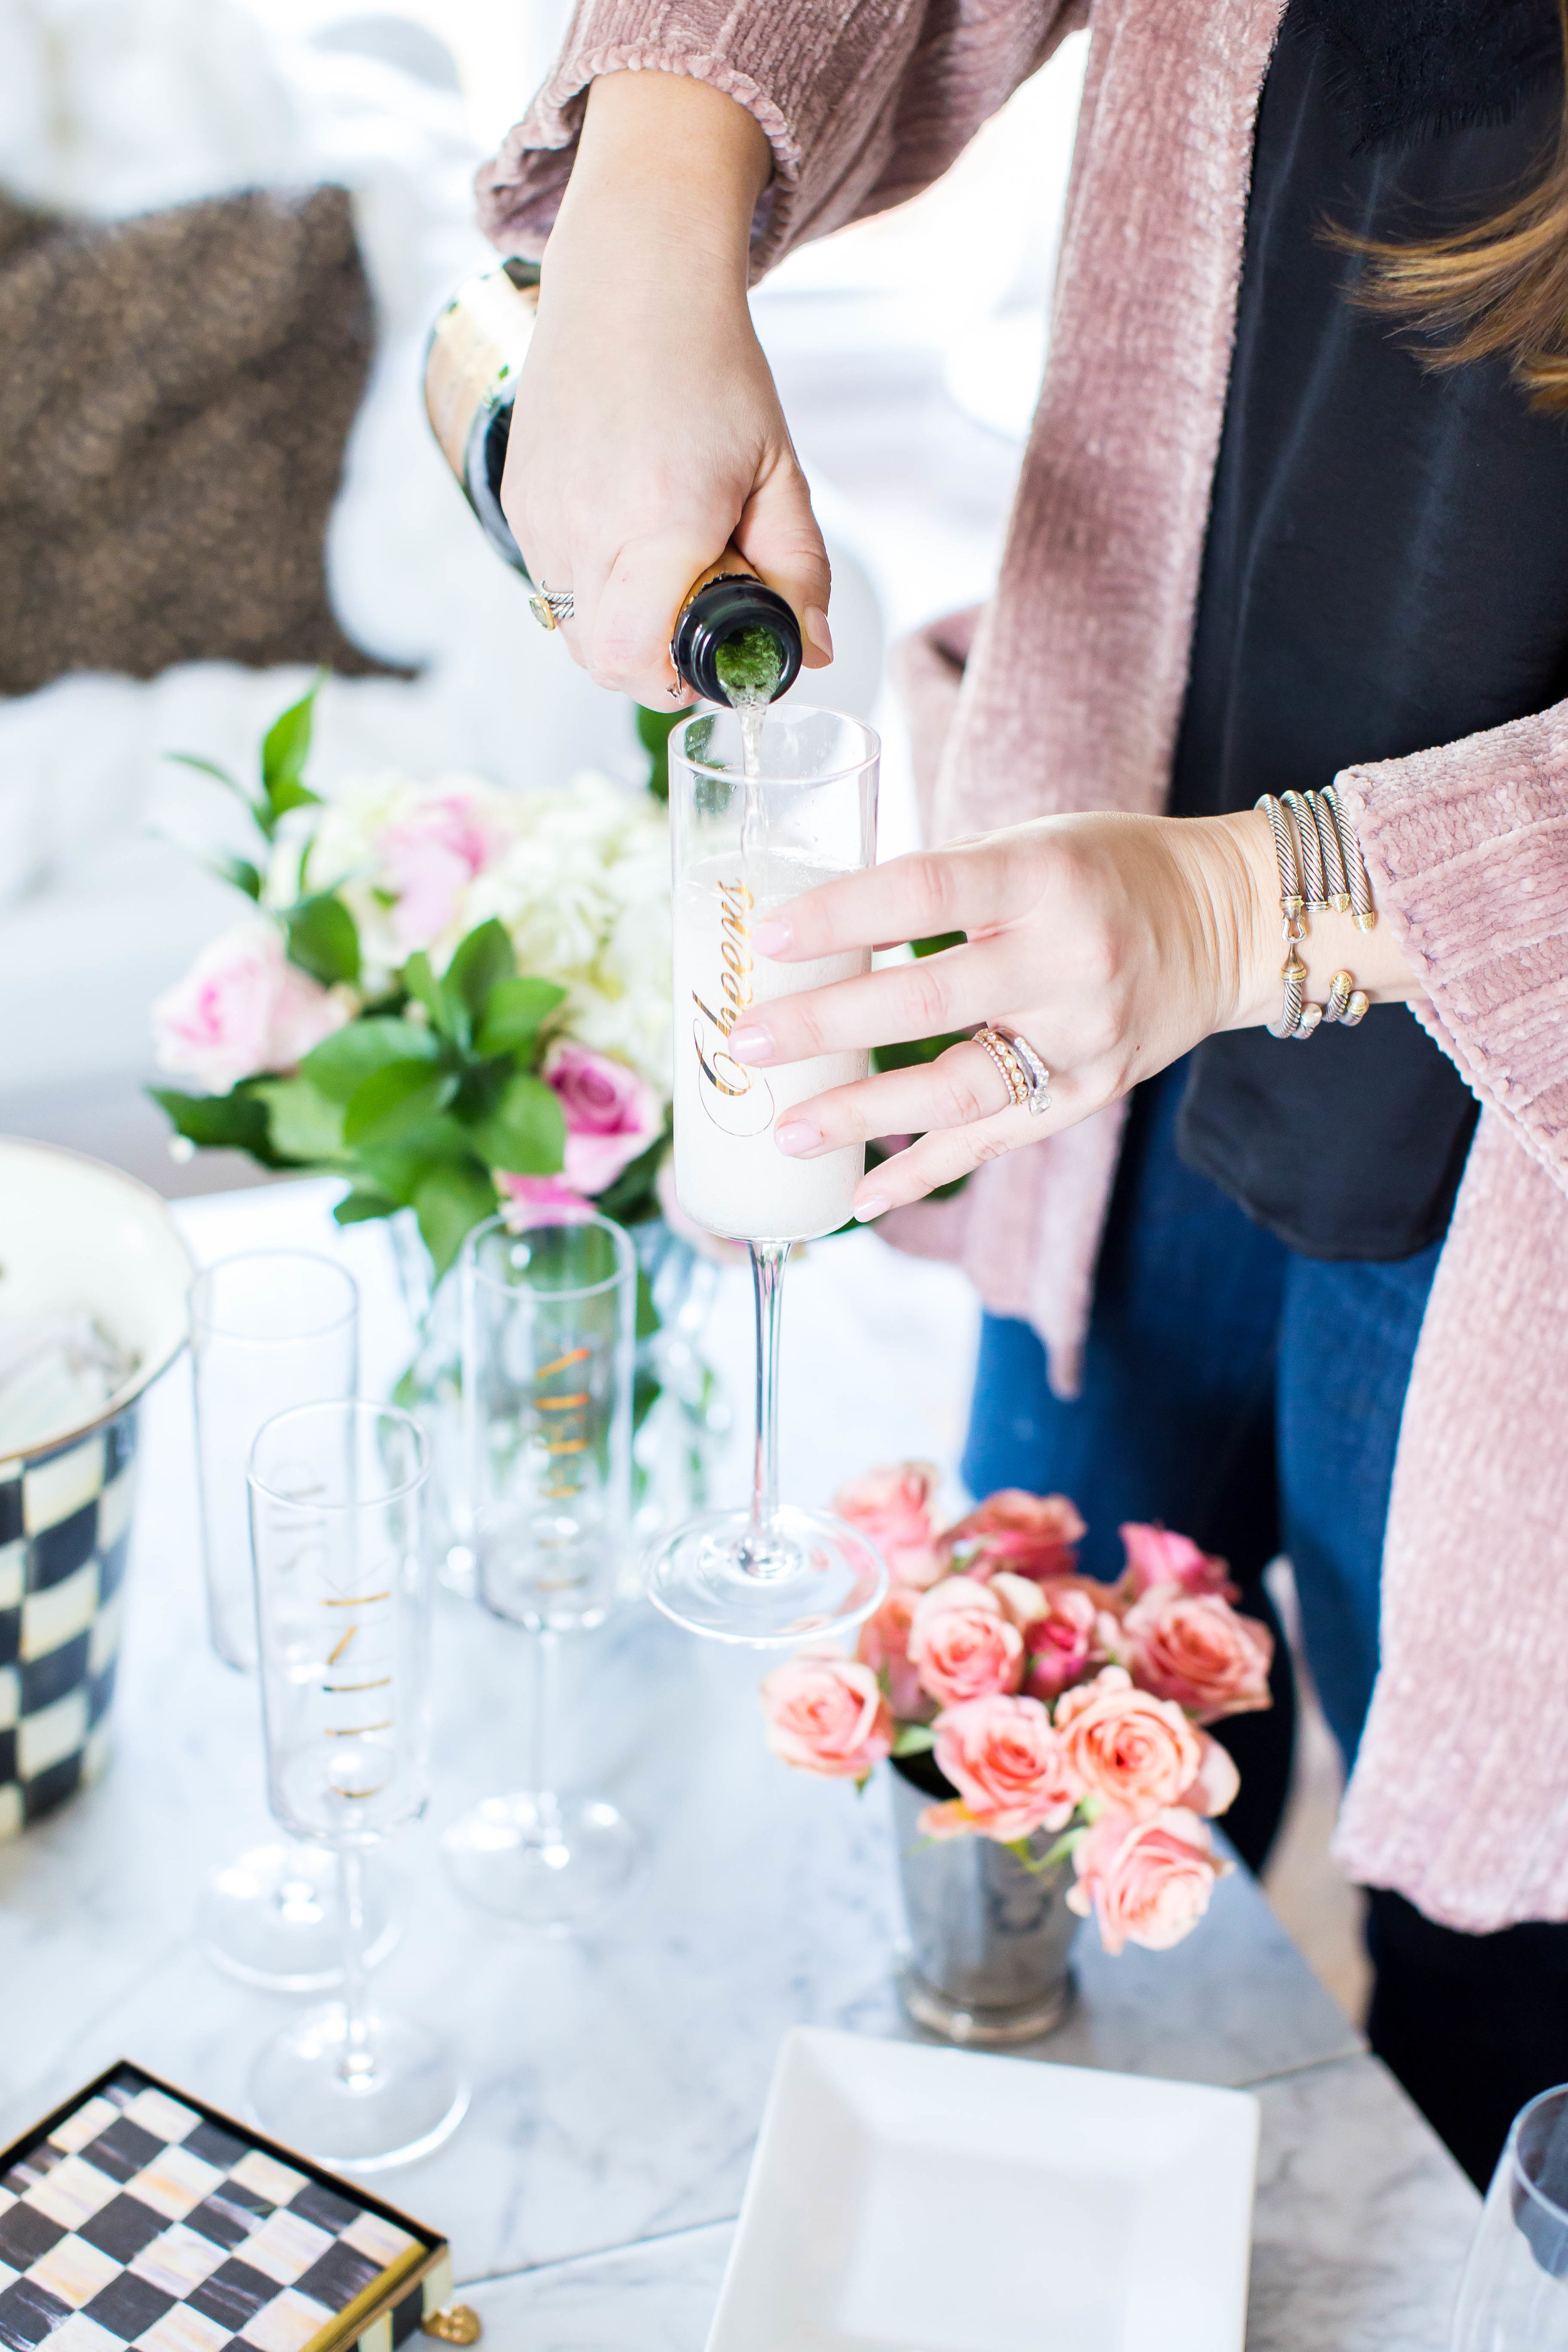 How to Host the Ultimate Girls' Night In